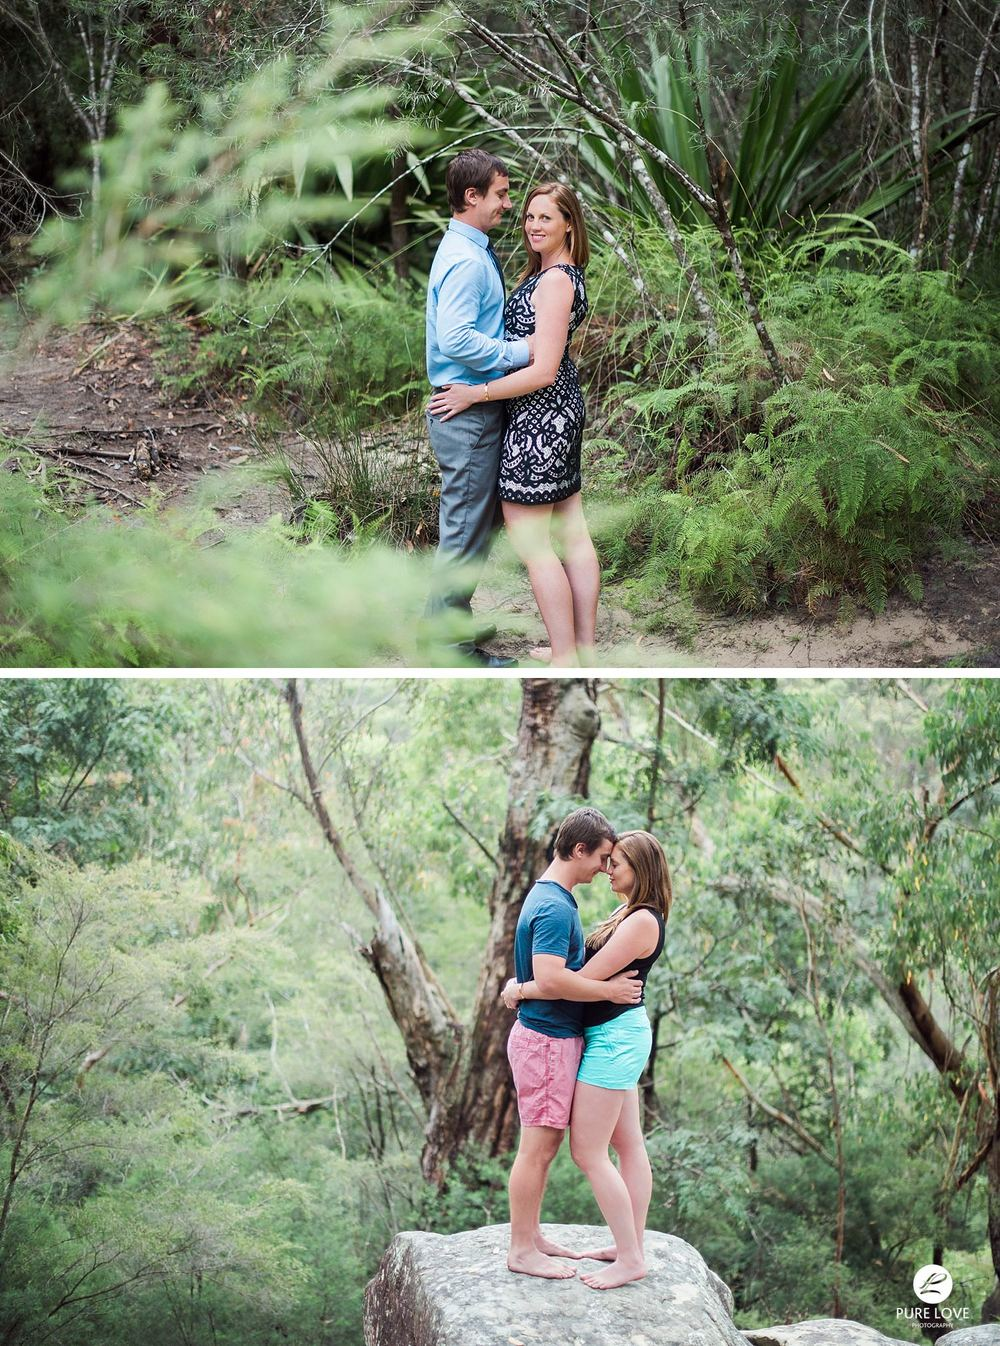 We always suggest bringing two different outfits for your Engagement Session: one dressy and one casual. This will give you more variety of photos from your photoshoot.